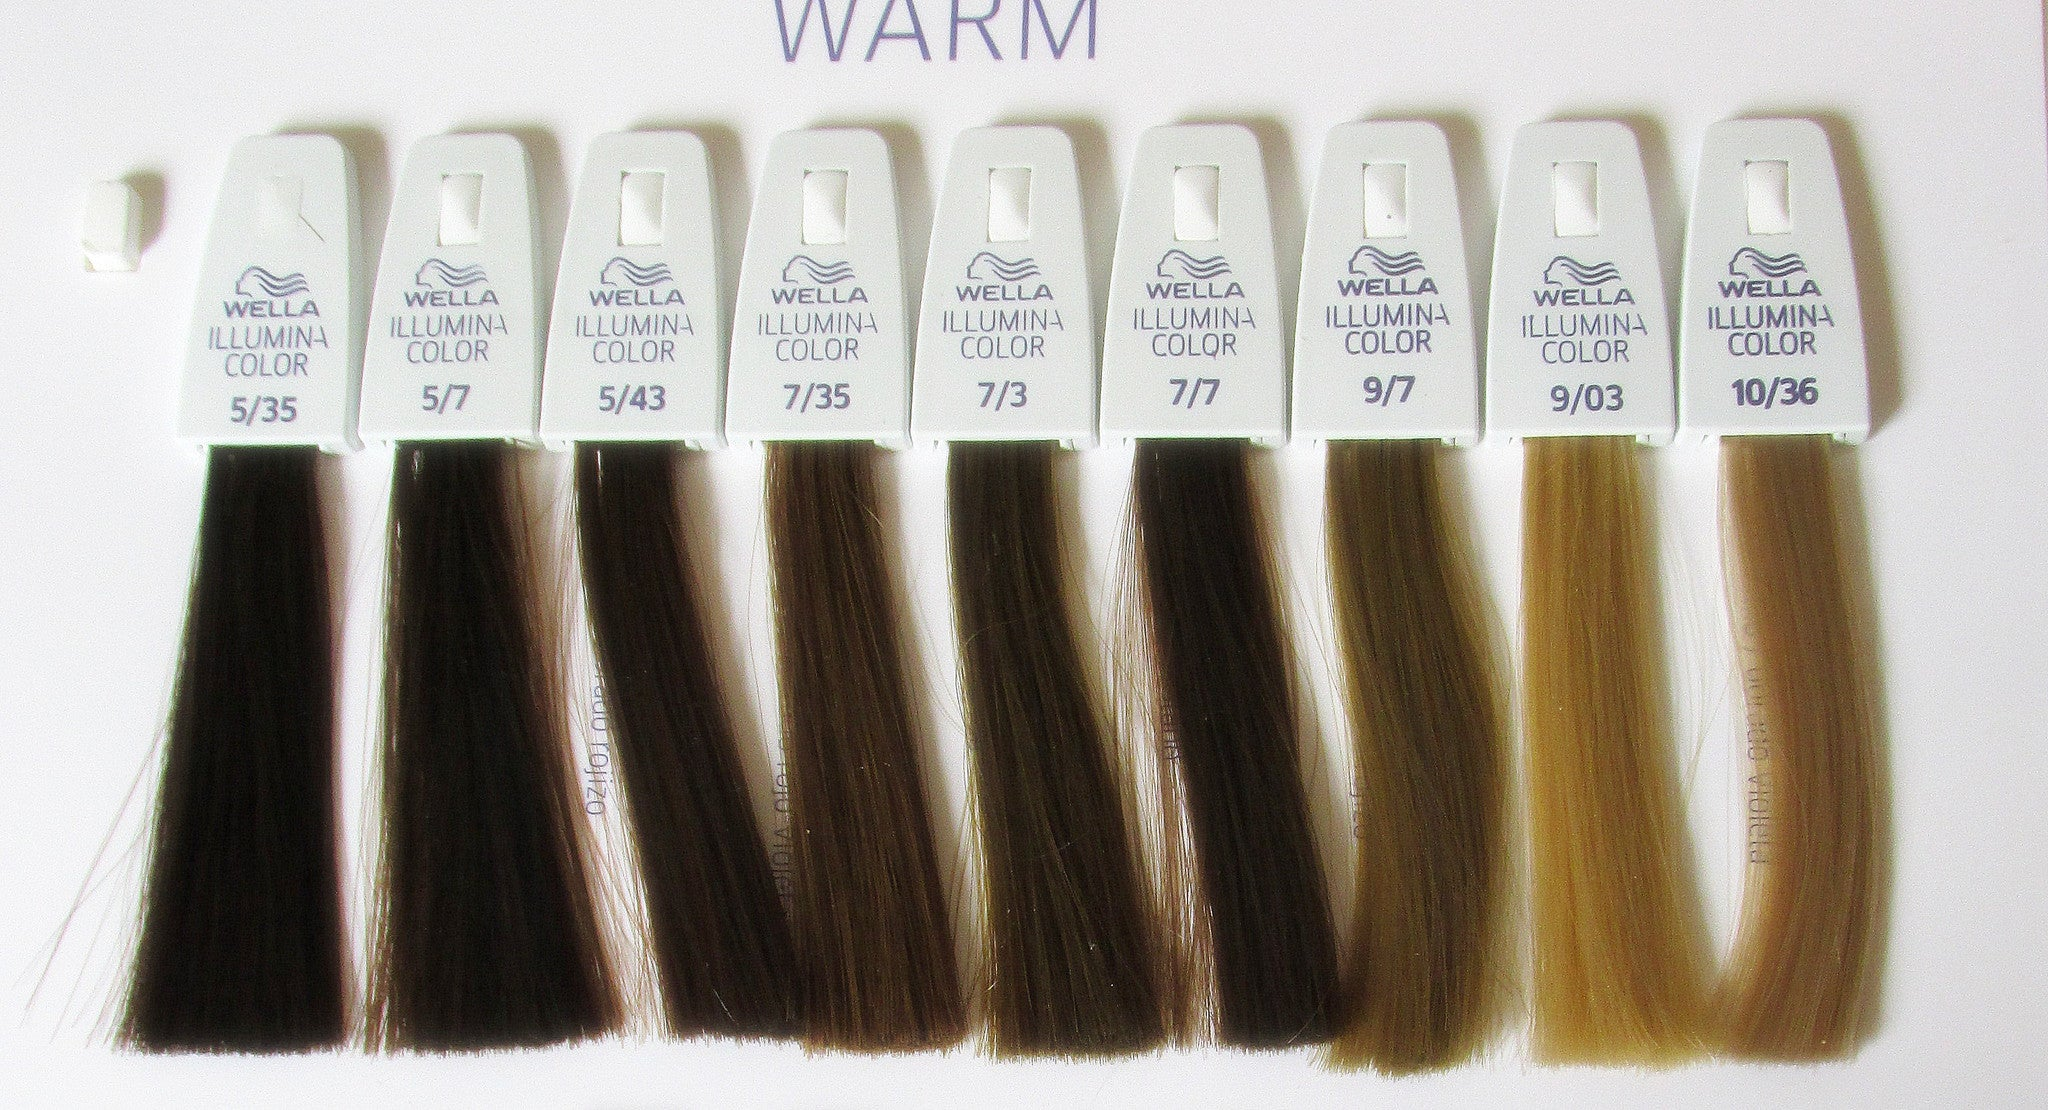 Wella Color Charm 6a Dark Ash Blonde Professional